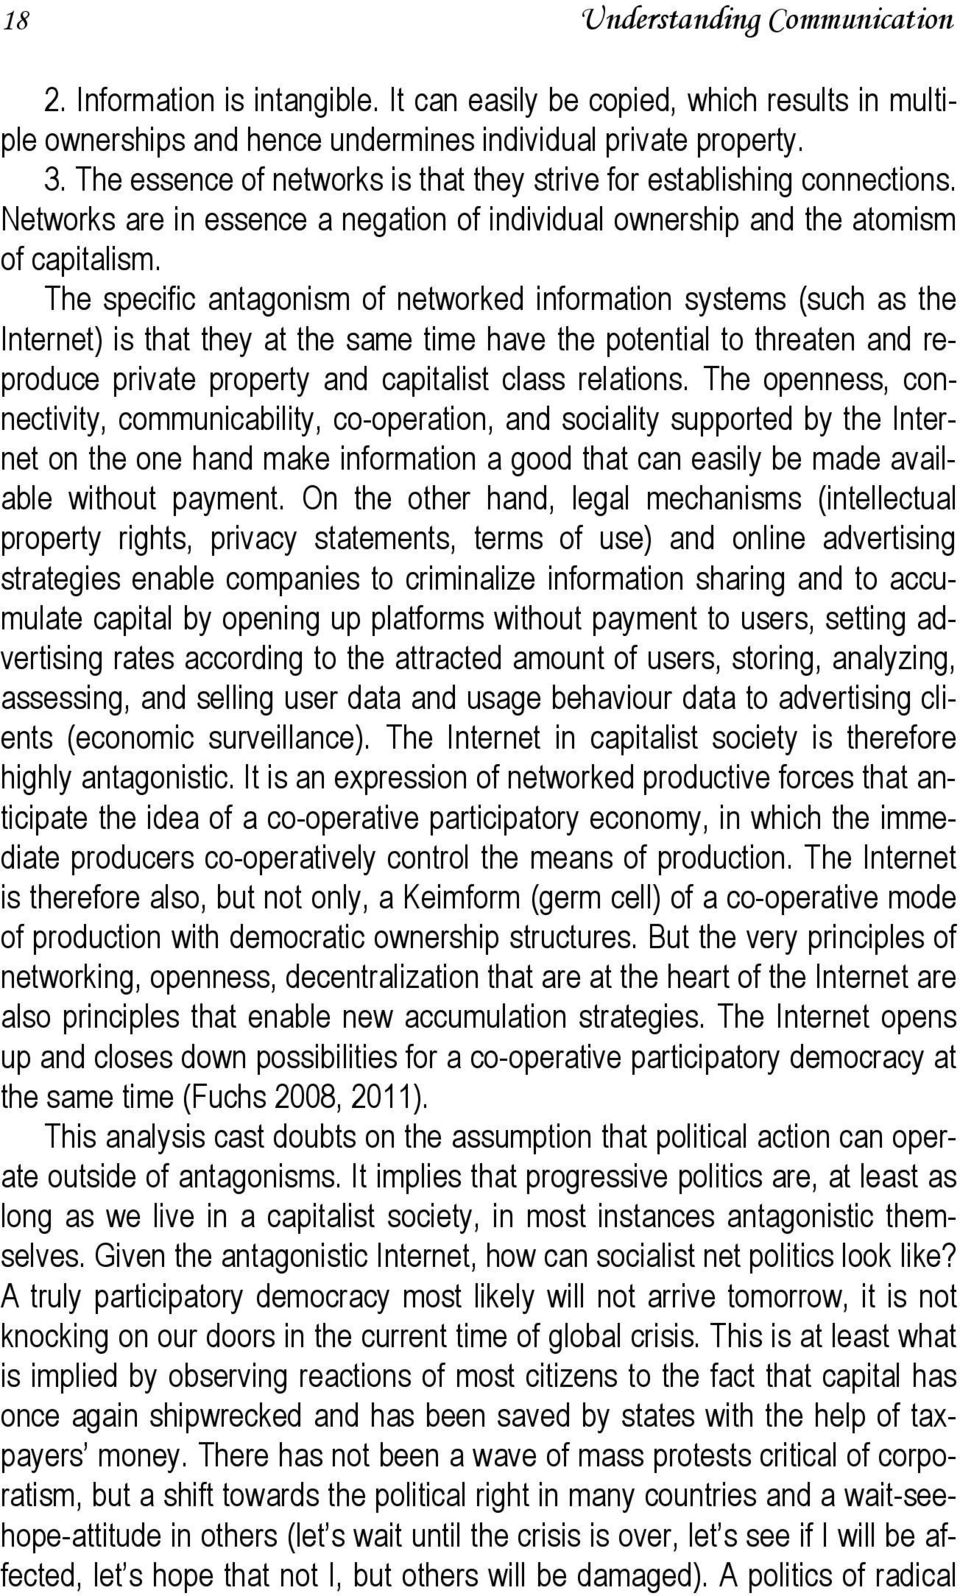 The specific antagonism of networked information systems (such as the Internet) is that they at the same time have the potential to threaten and reproduce private property and capitalist class